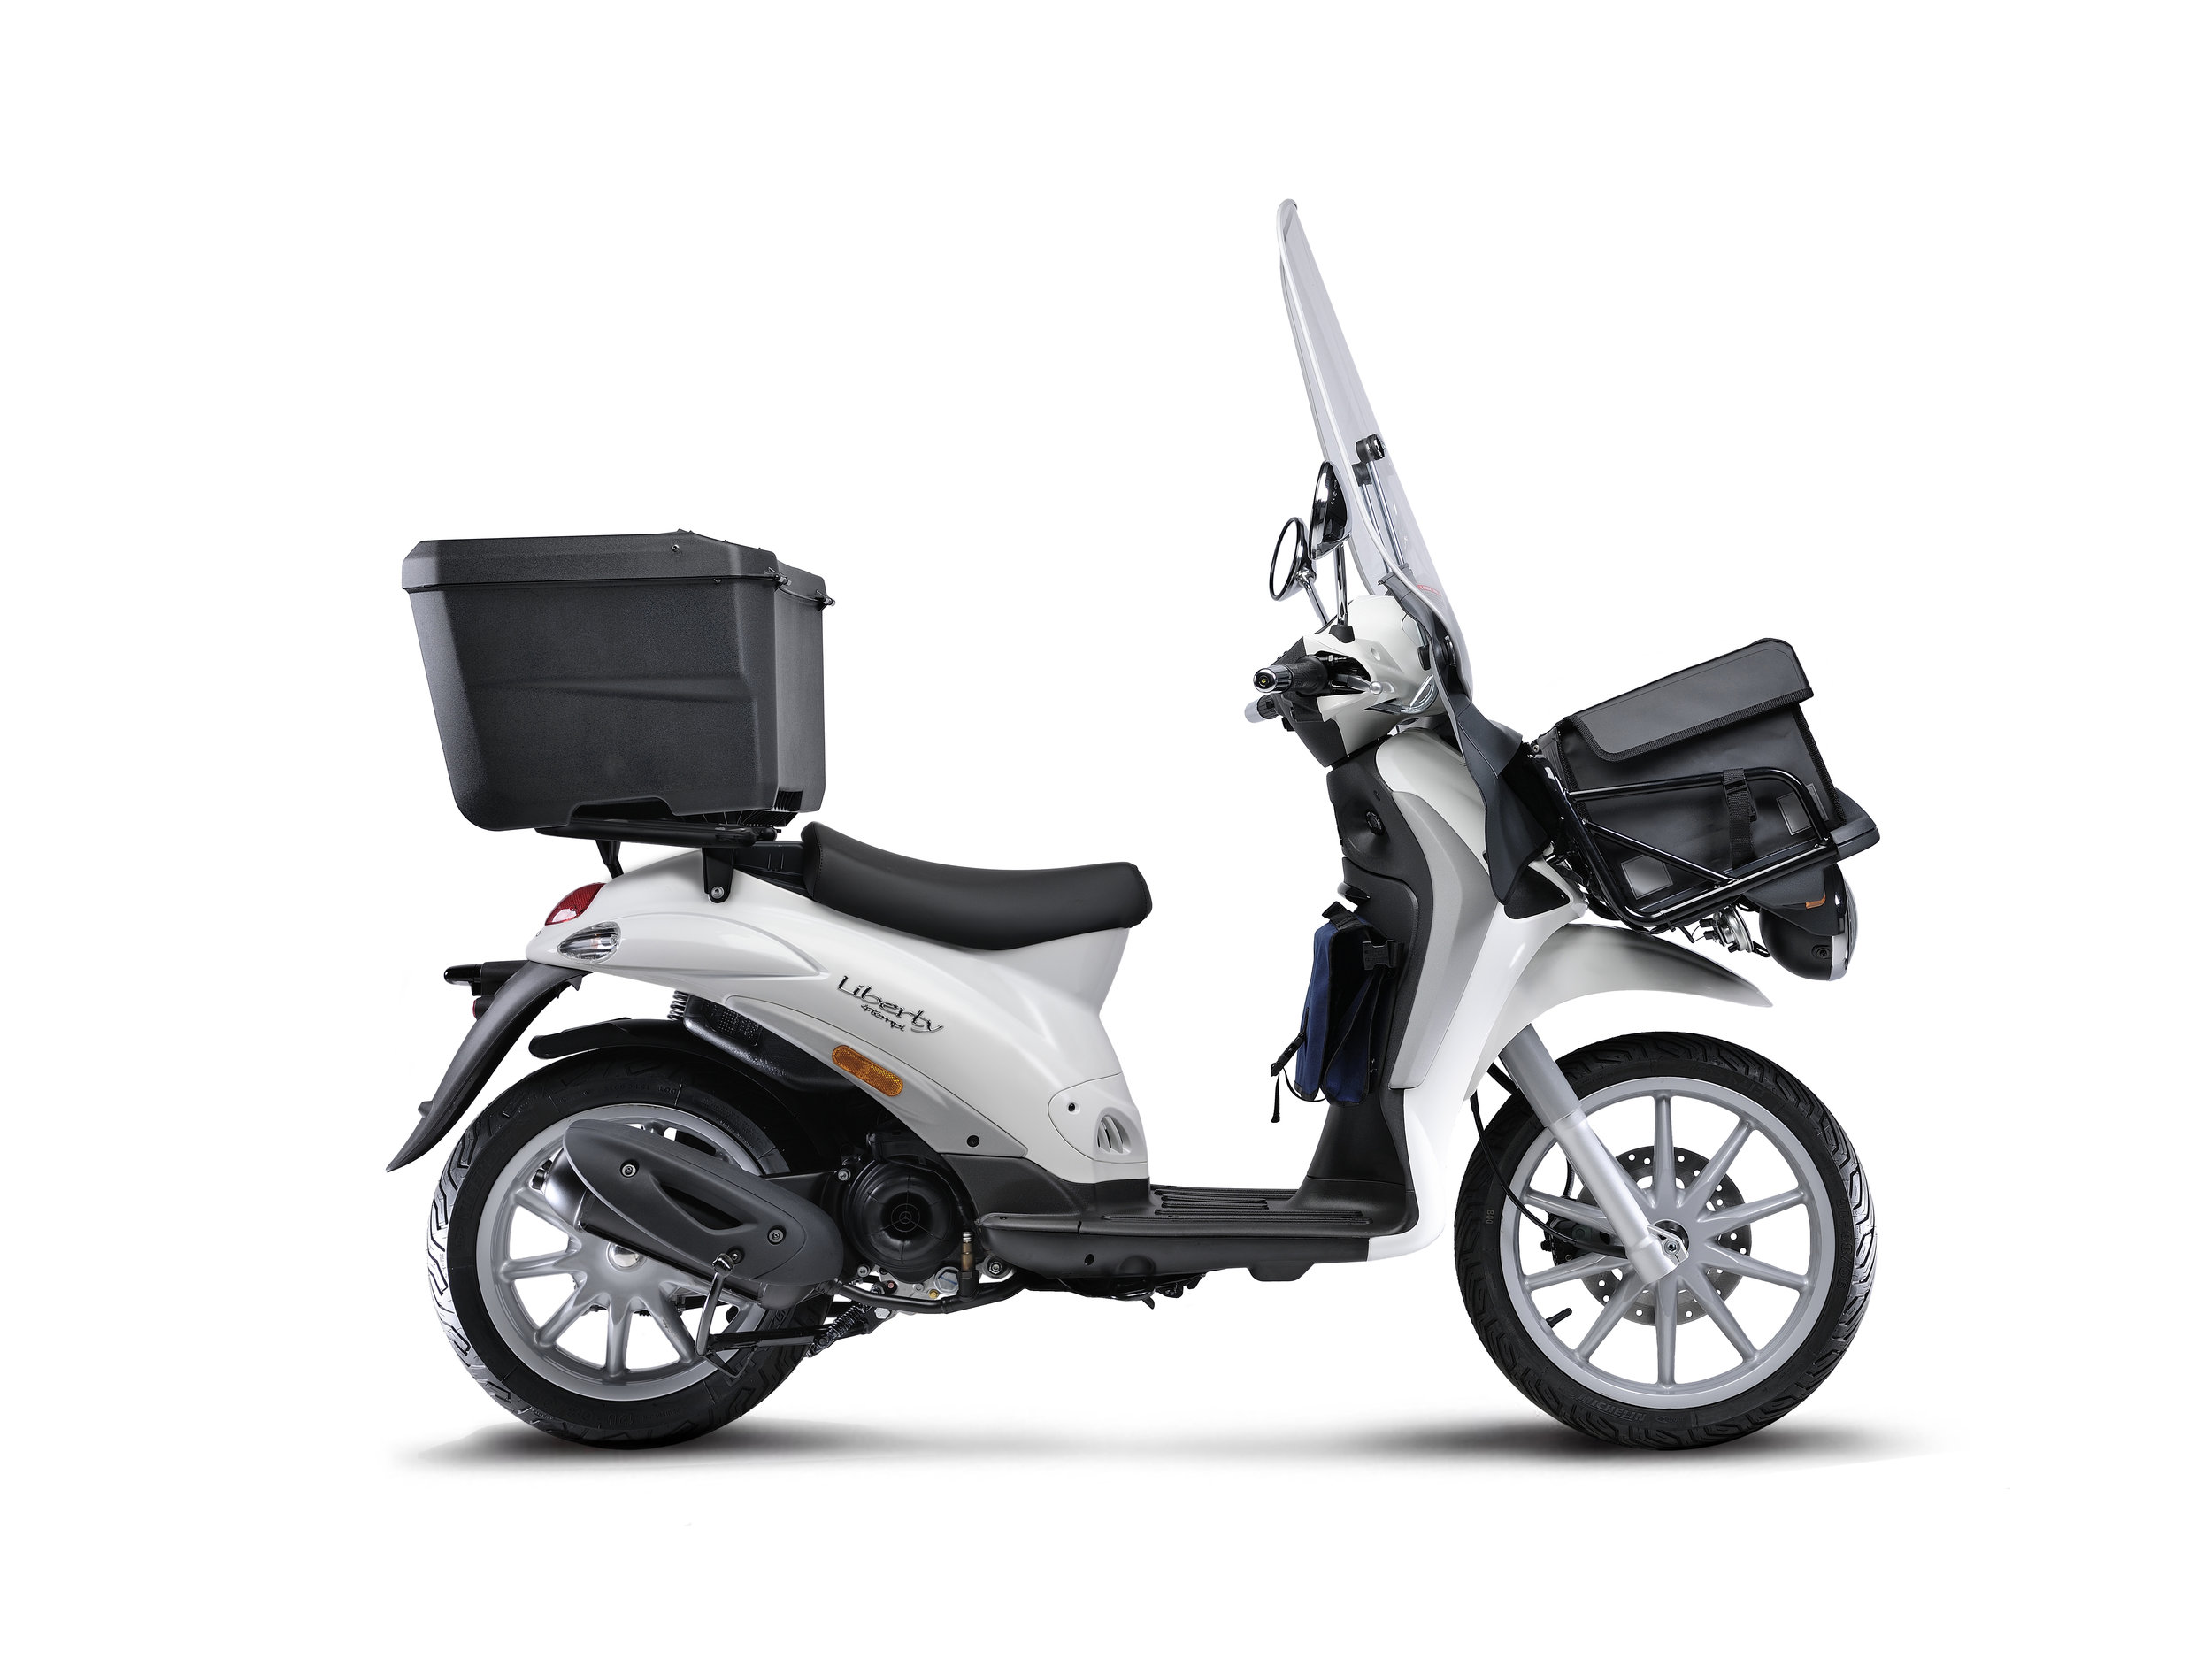 Piaggio Liberty delivery 50 Side Dx Double Rack Full Optional.jpg